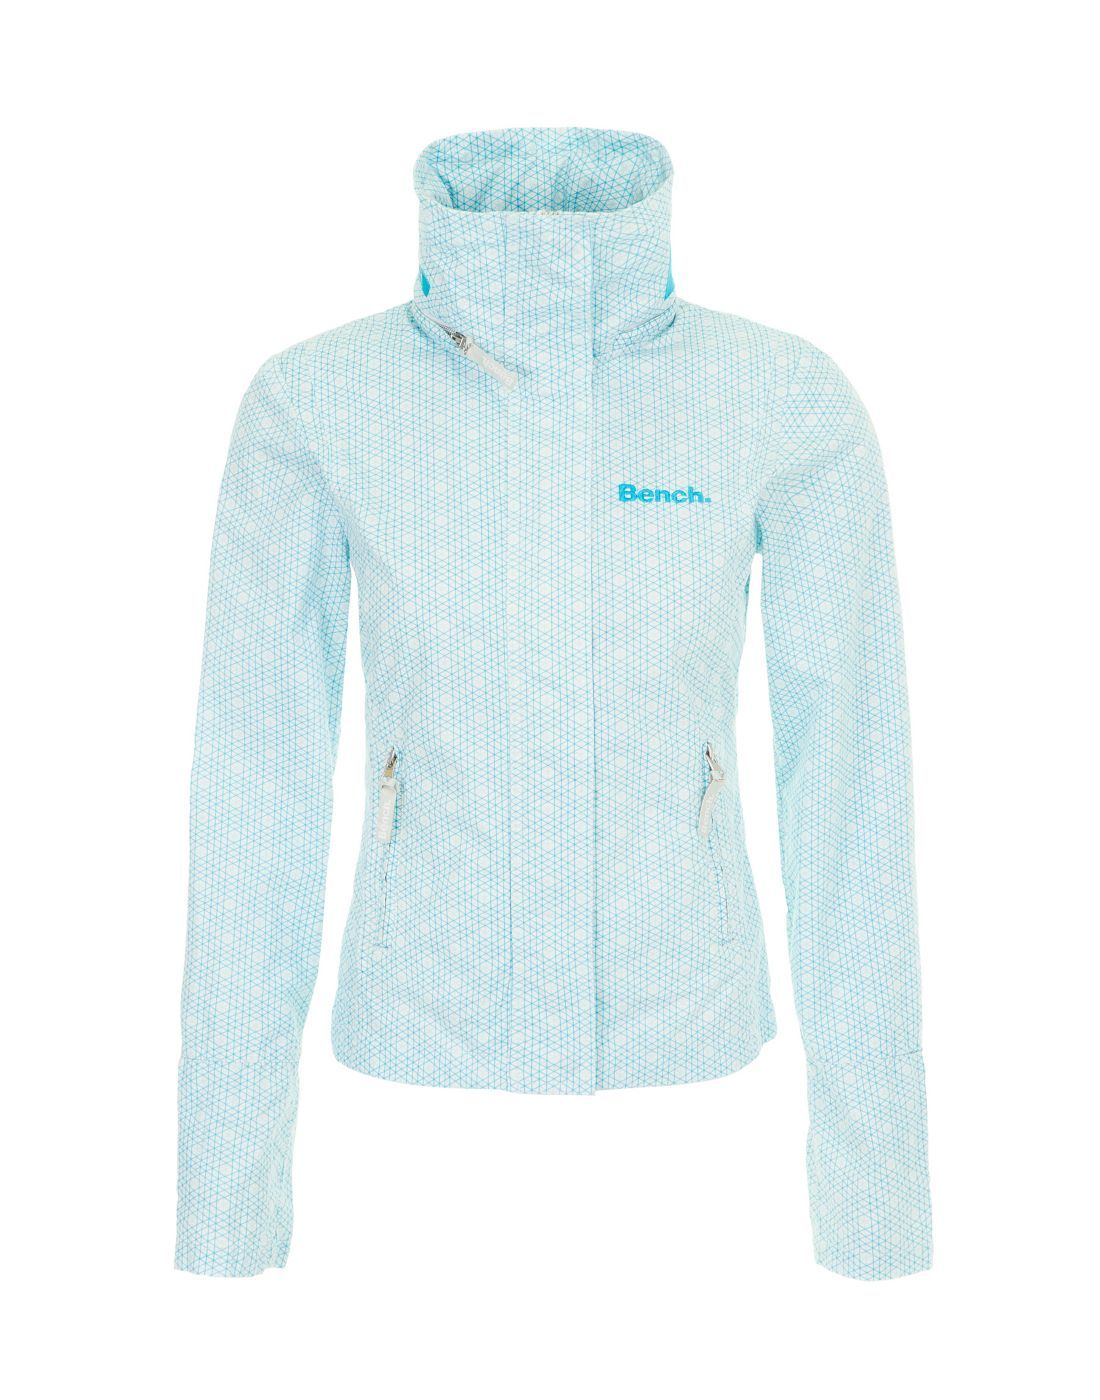 Bbq Jacket Outerwear Women 129 00 Bench Jackets Outerwear Women Athletic Outfits [ 1400 x 1100 Pixel ]